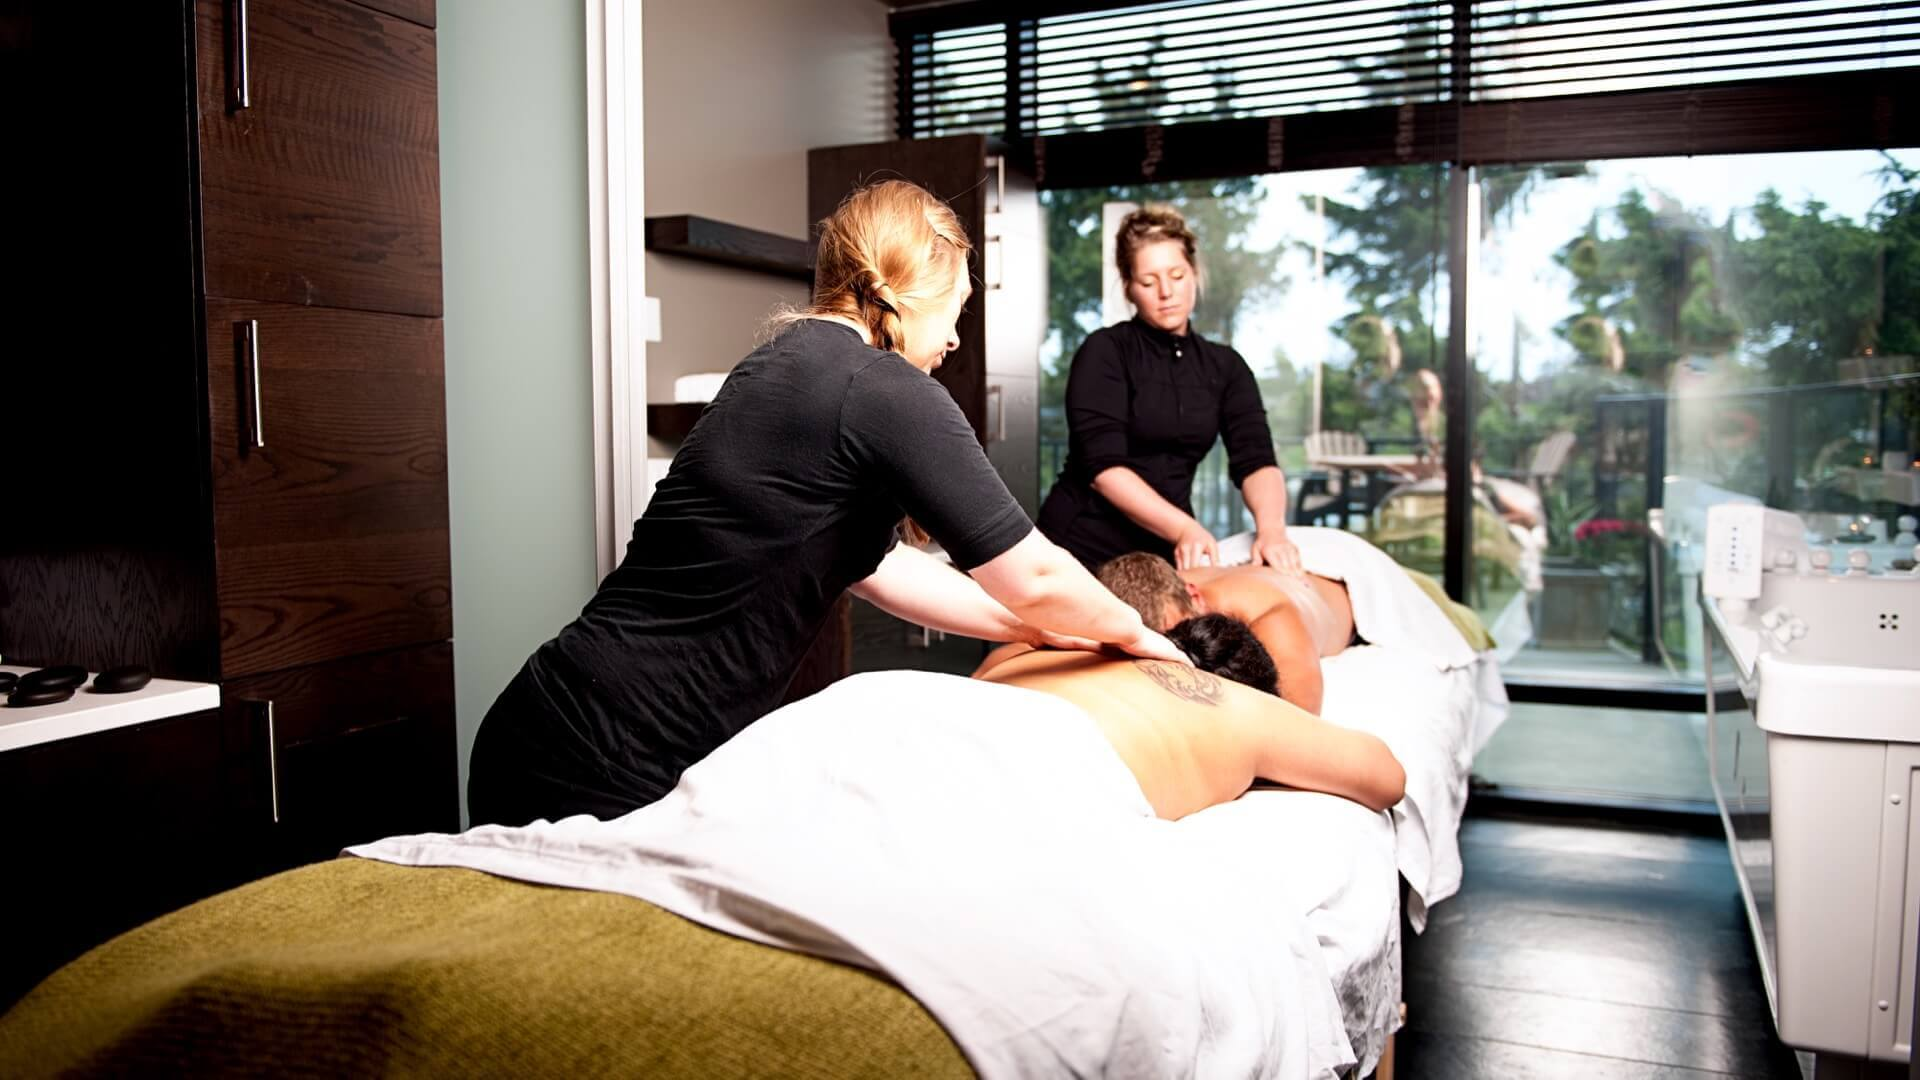 wellness and spa is a good option for generating non-room revenue at your hotel